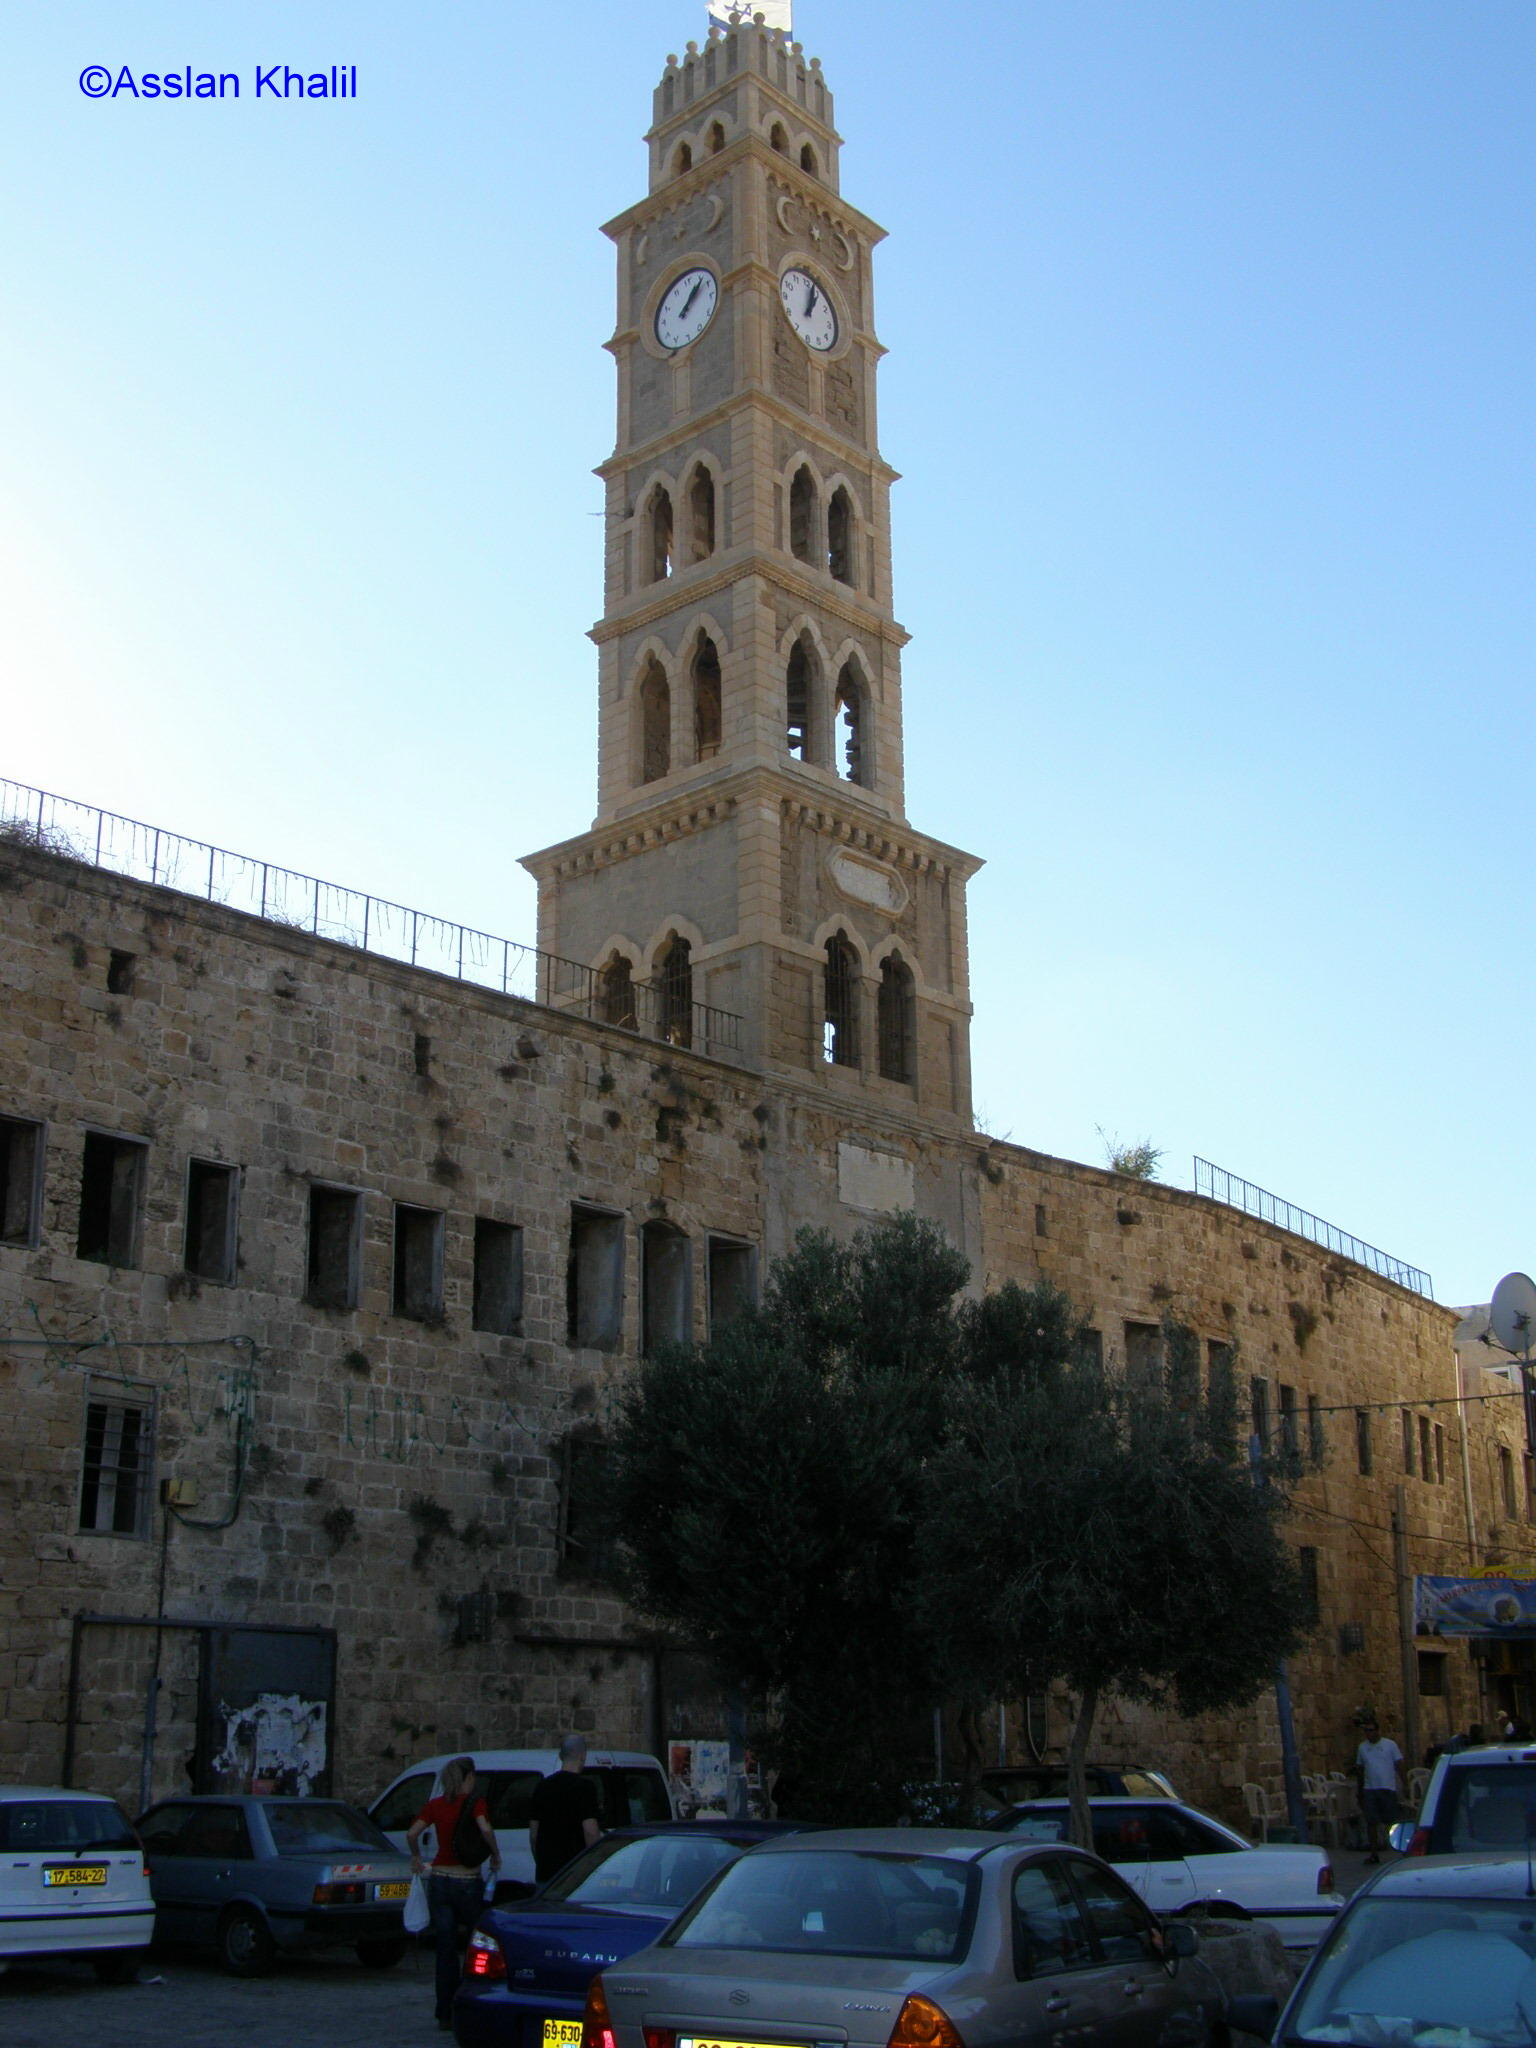 Acre - عكا : The Clock Tower